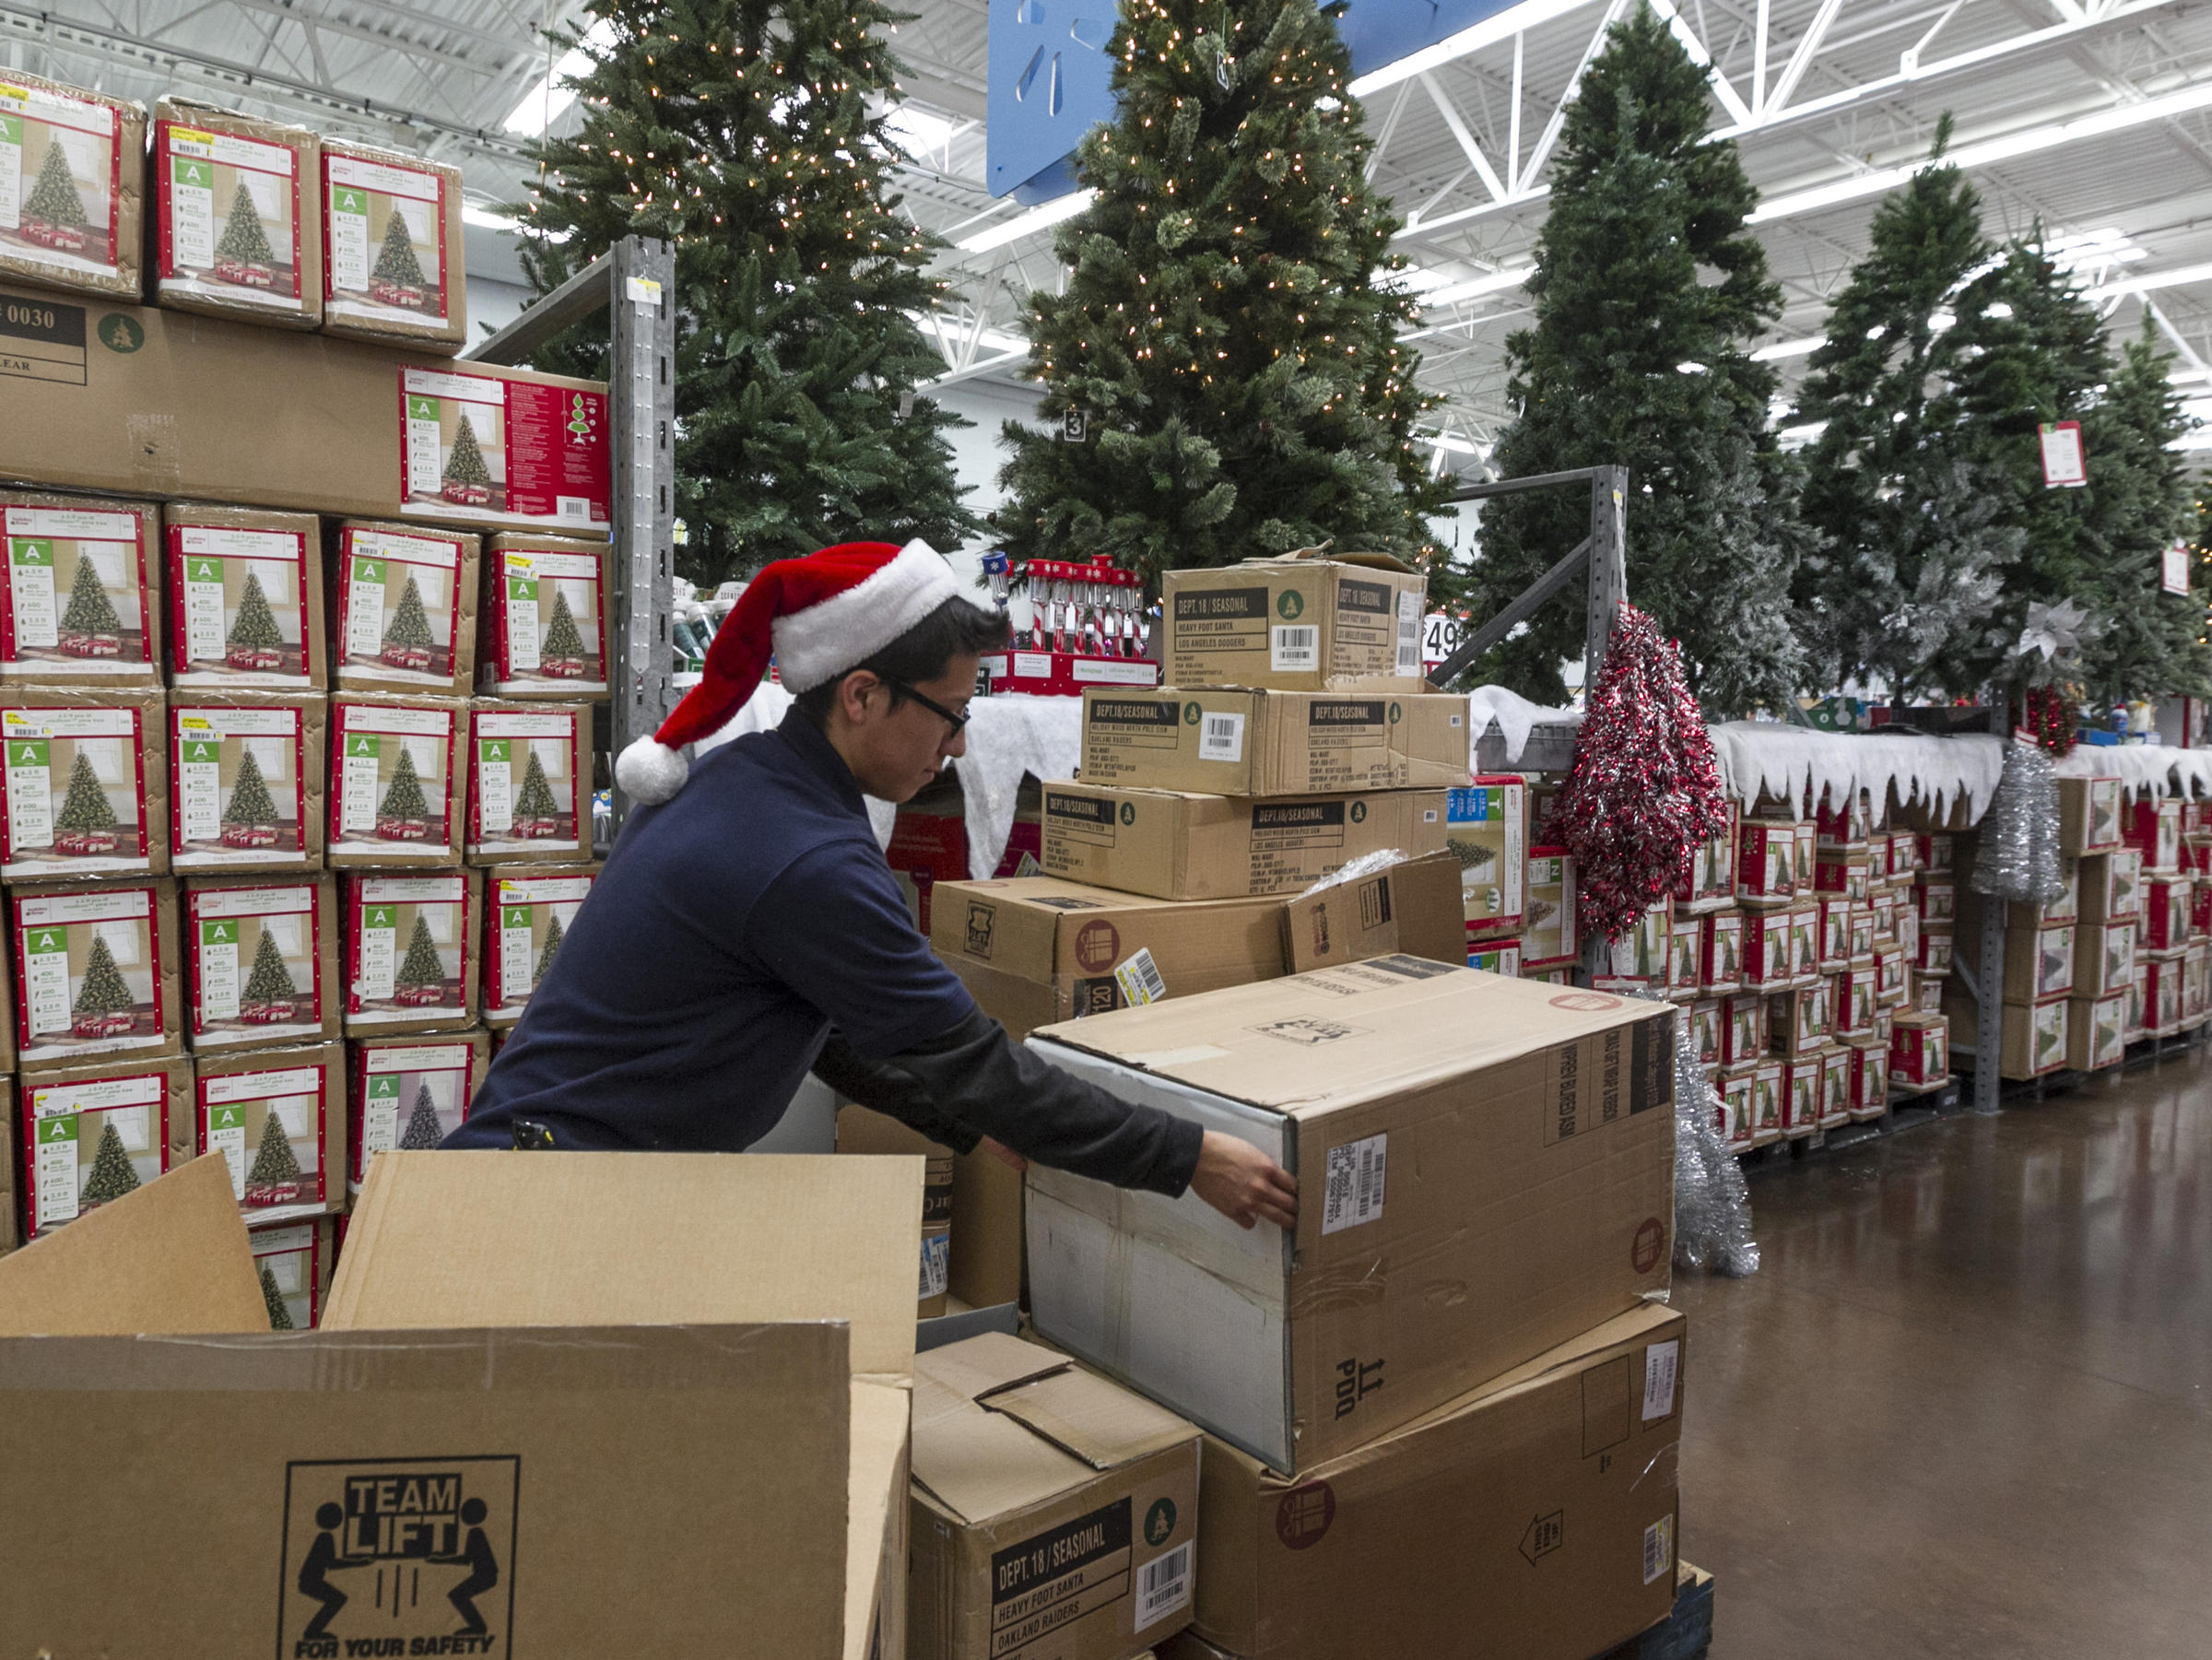 walmart associate angel campos stocks christmas decorations wednesday ahead of the pre black friday event at the wal mart supercenter store in rosemead